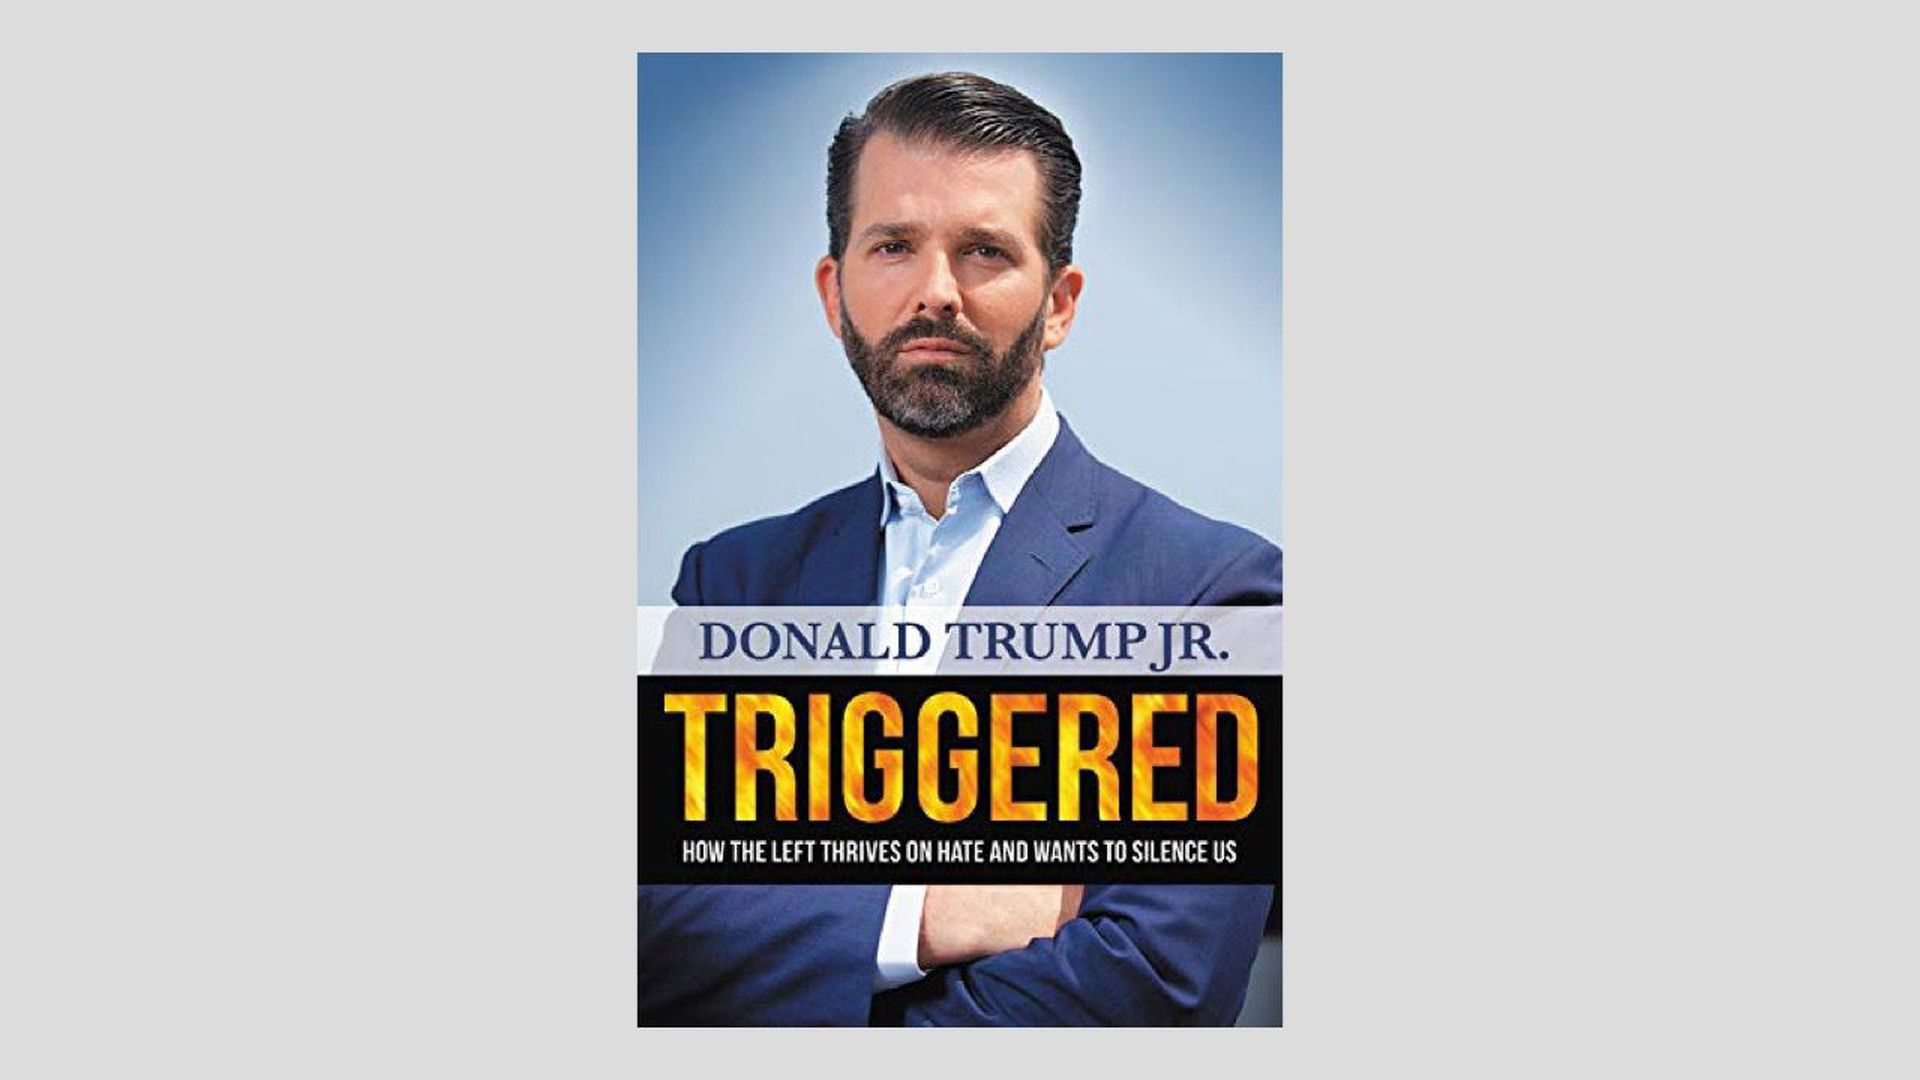 The cover of Don Jr.'s new book